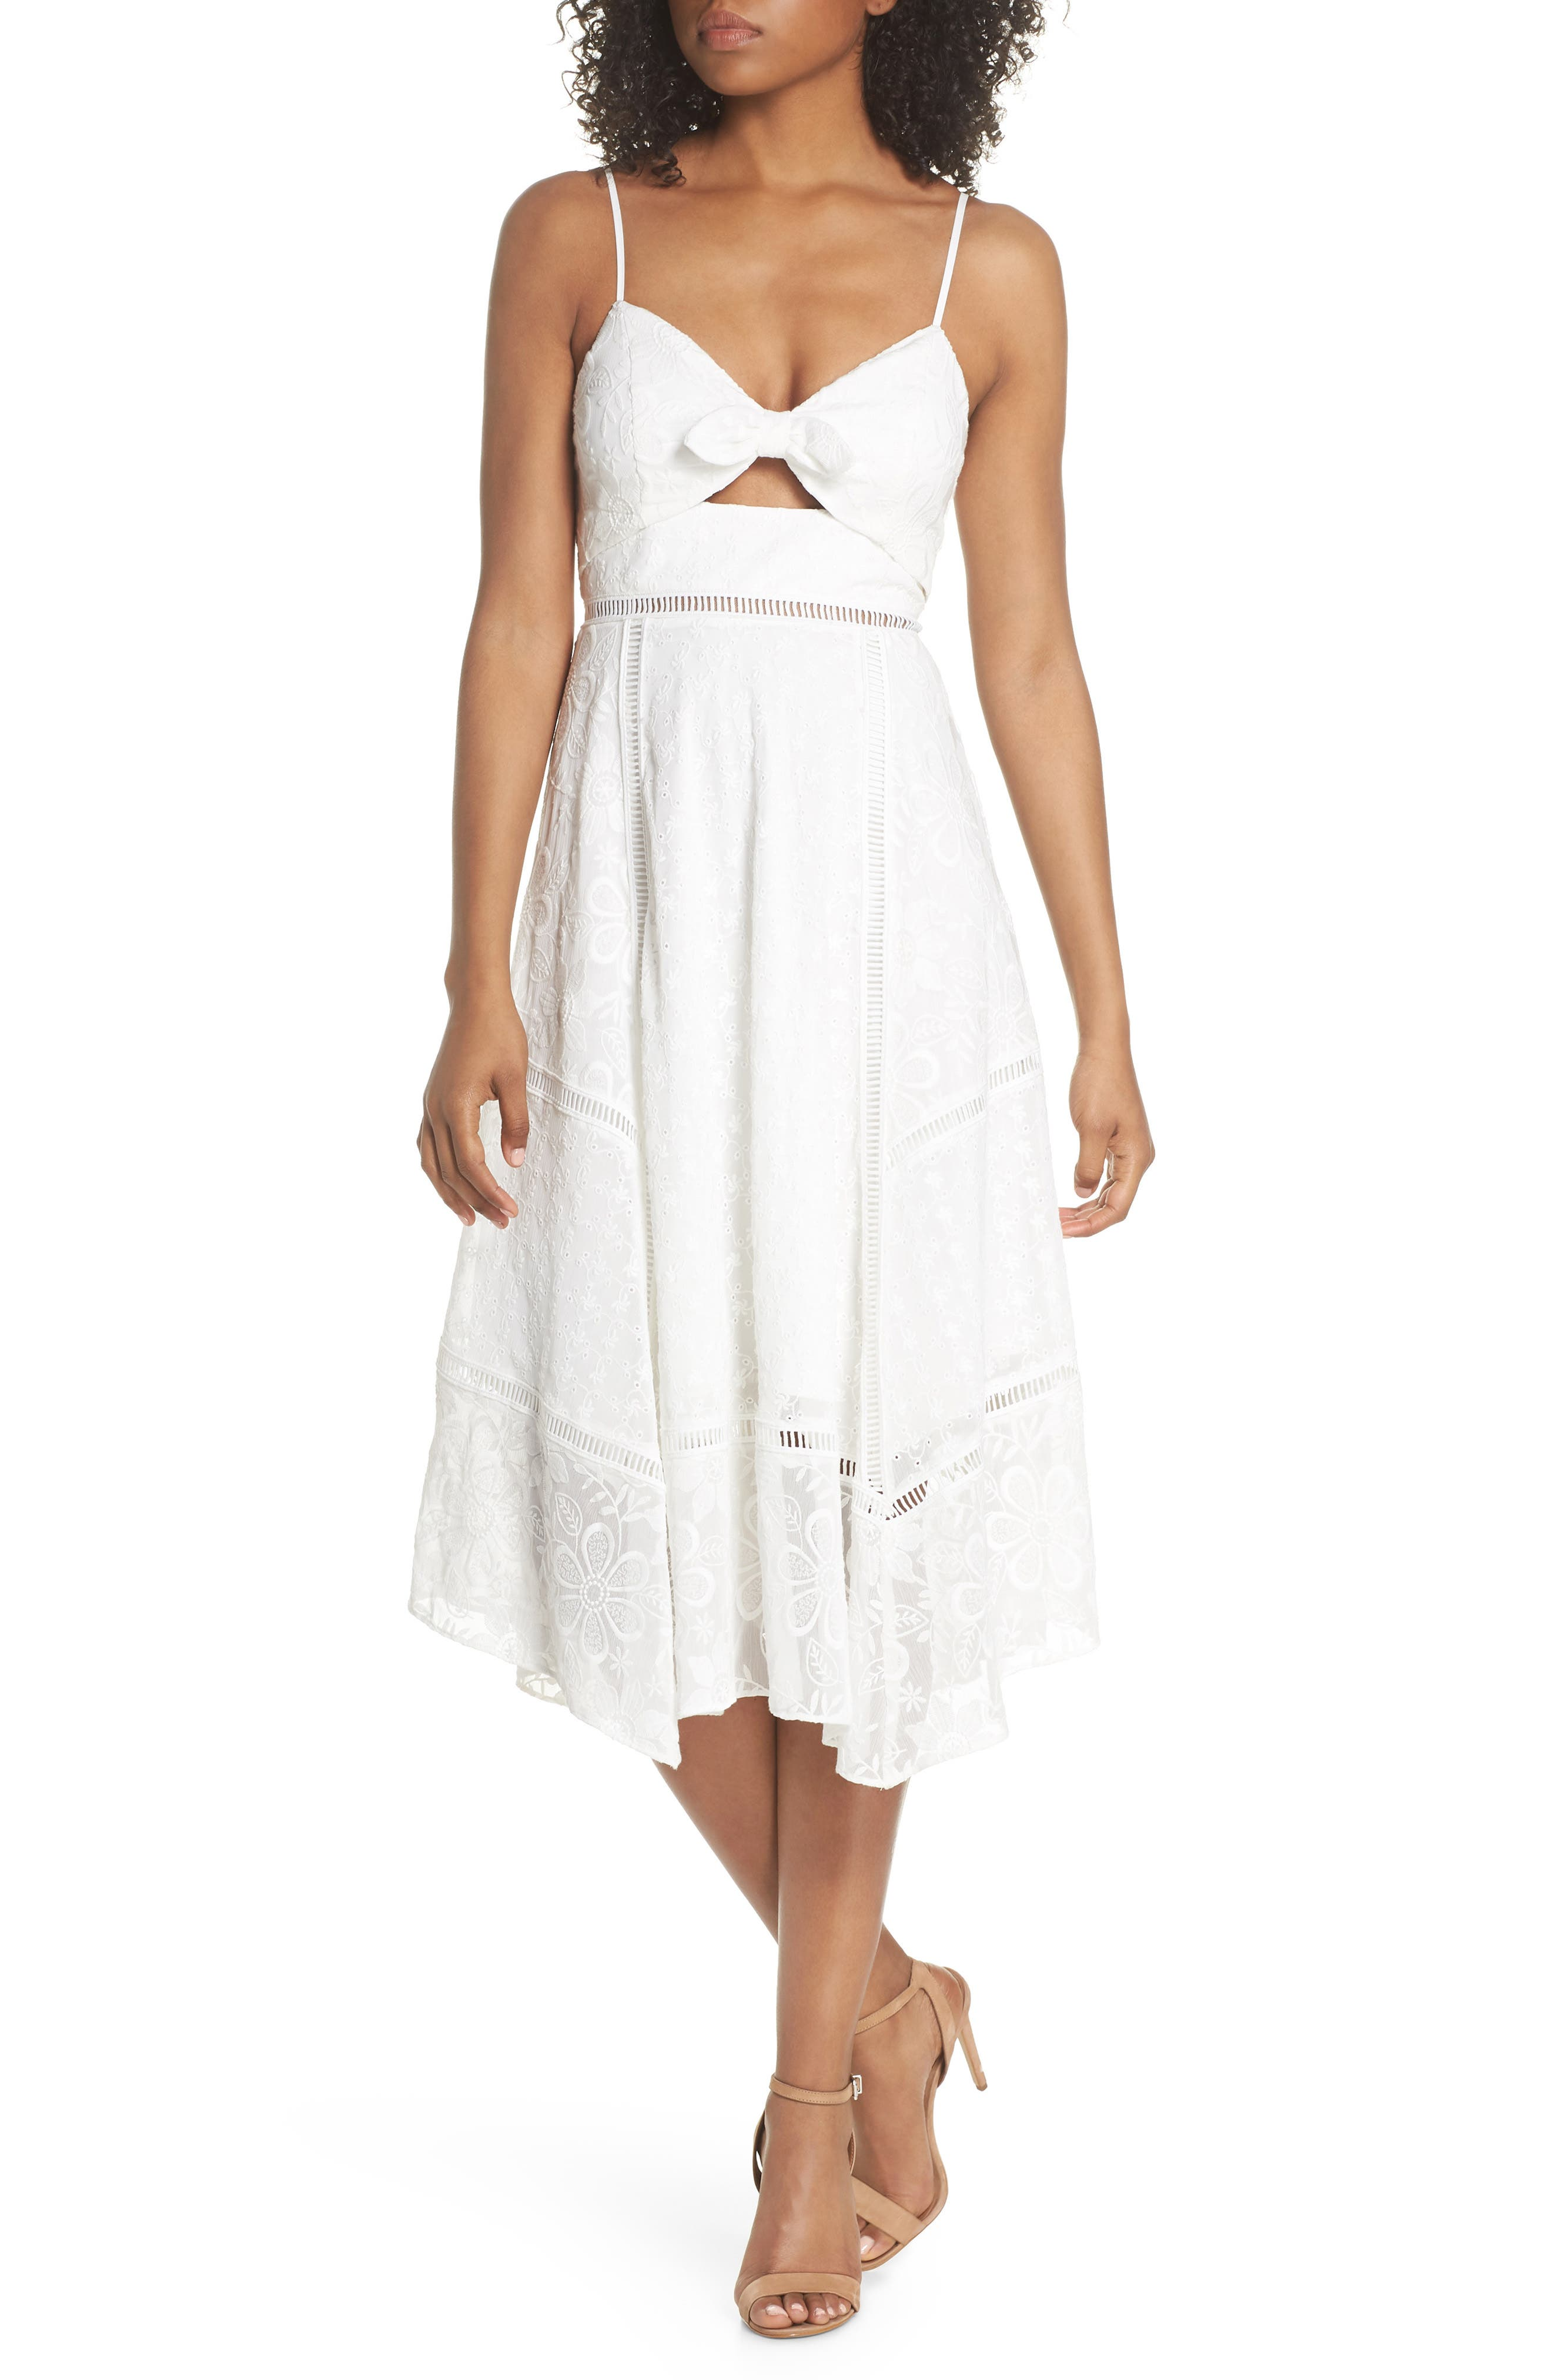 Broderie Anglaise Knot Detail Dress,                         Main,                         color, White